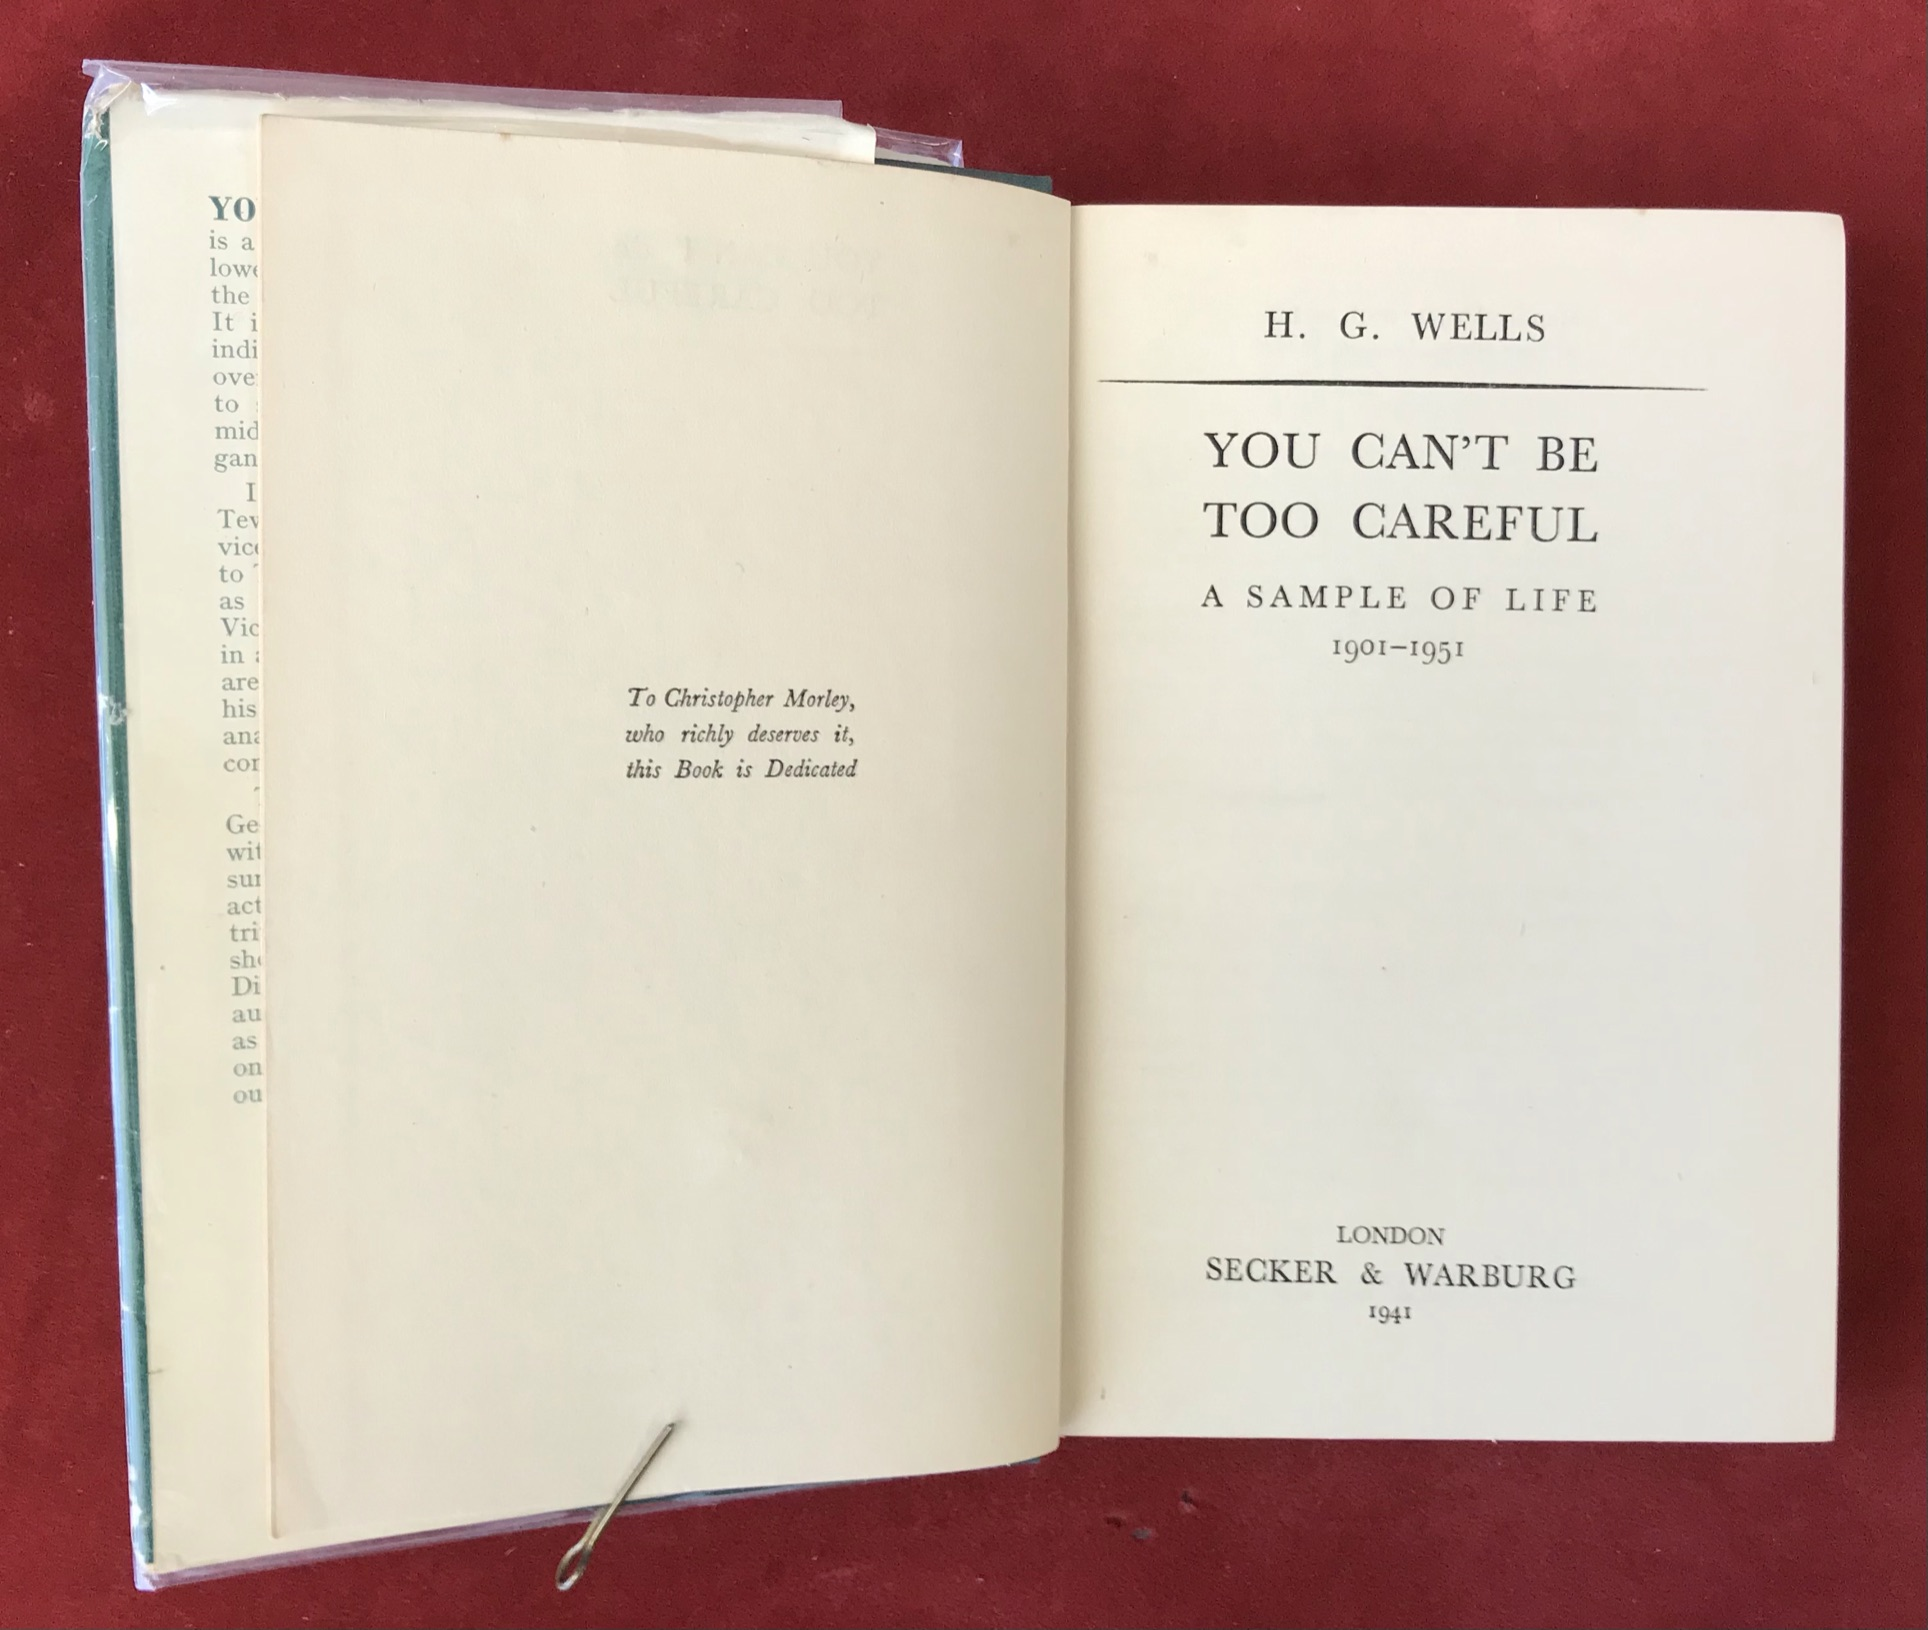 You Can't Be Too CarefulFirst edition with D/W, 1941 - Image 2 of 2